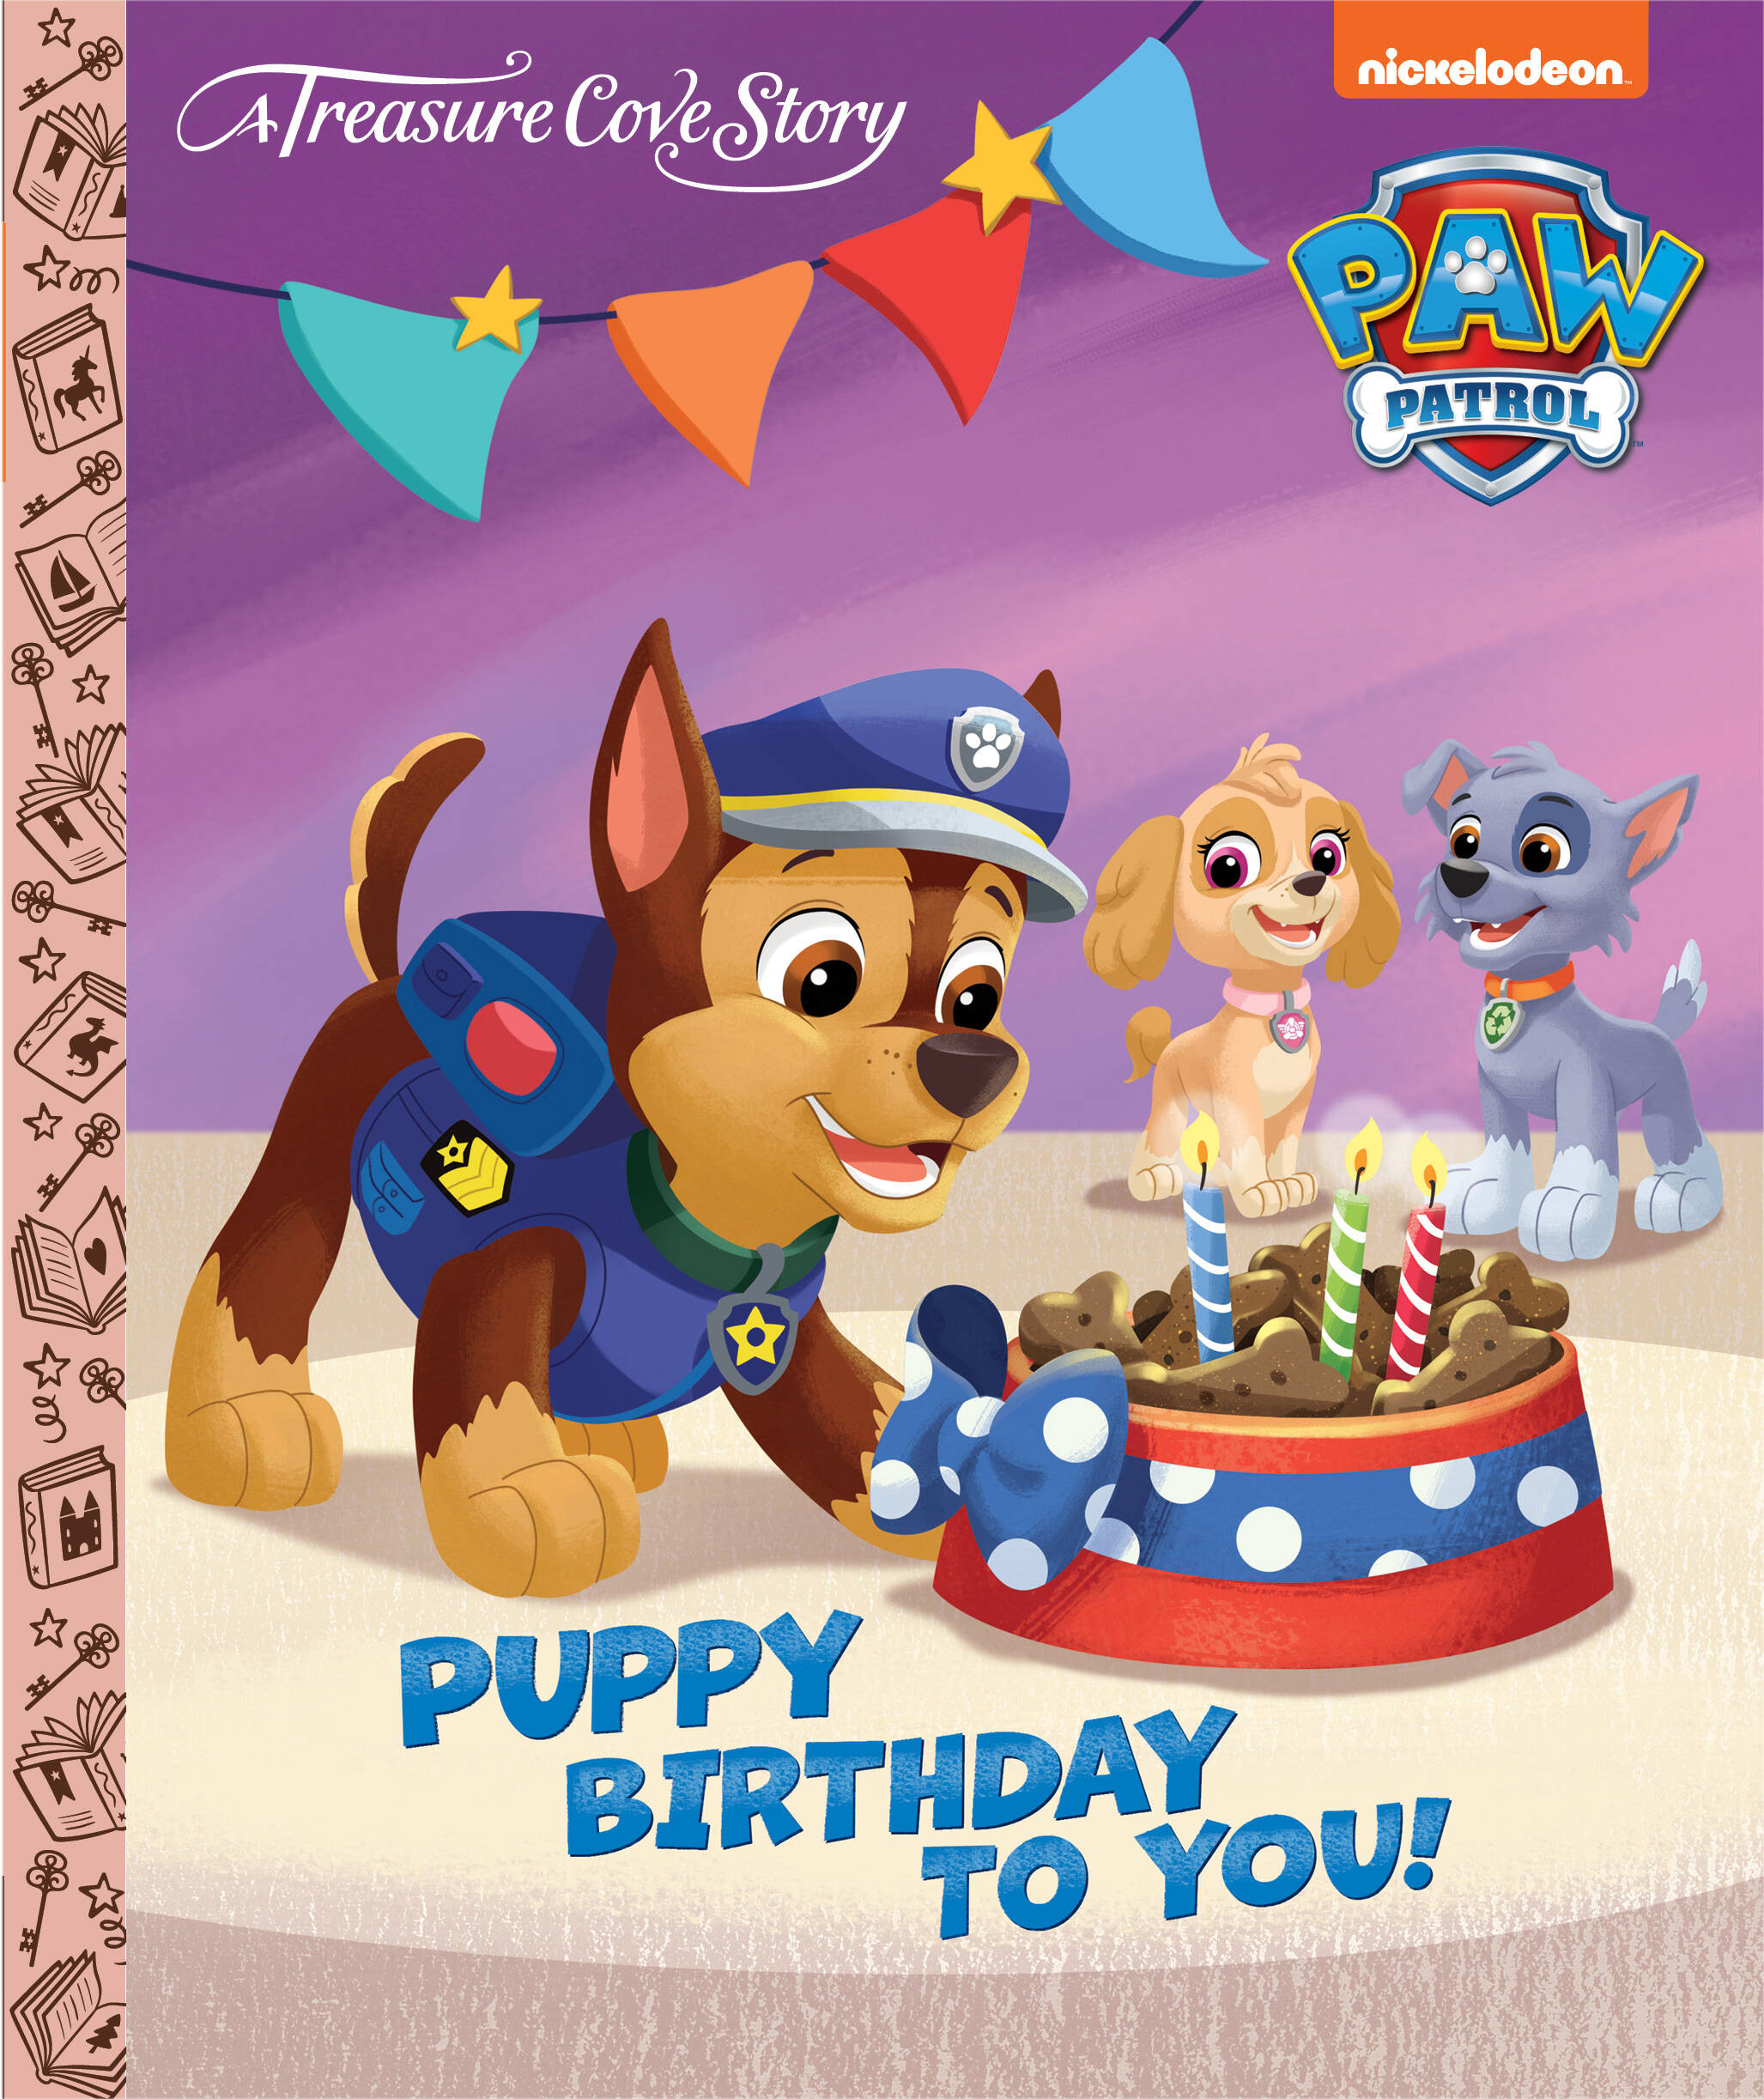 Paw Patrol - Treasure Cove Stories